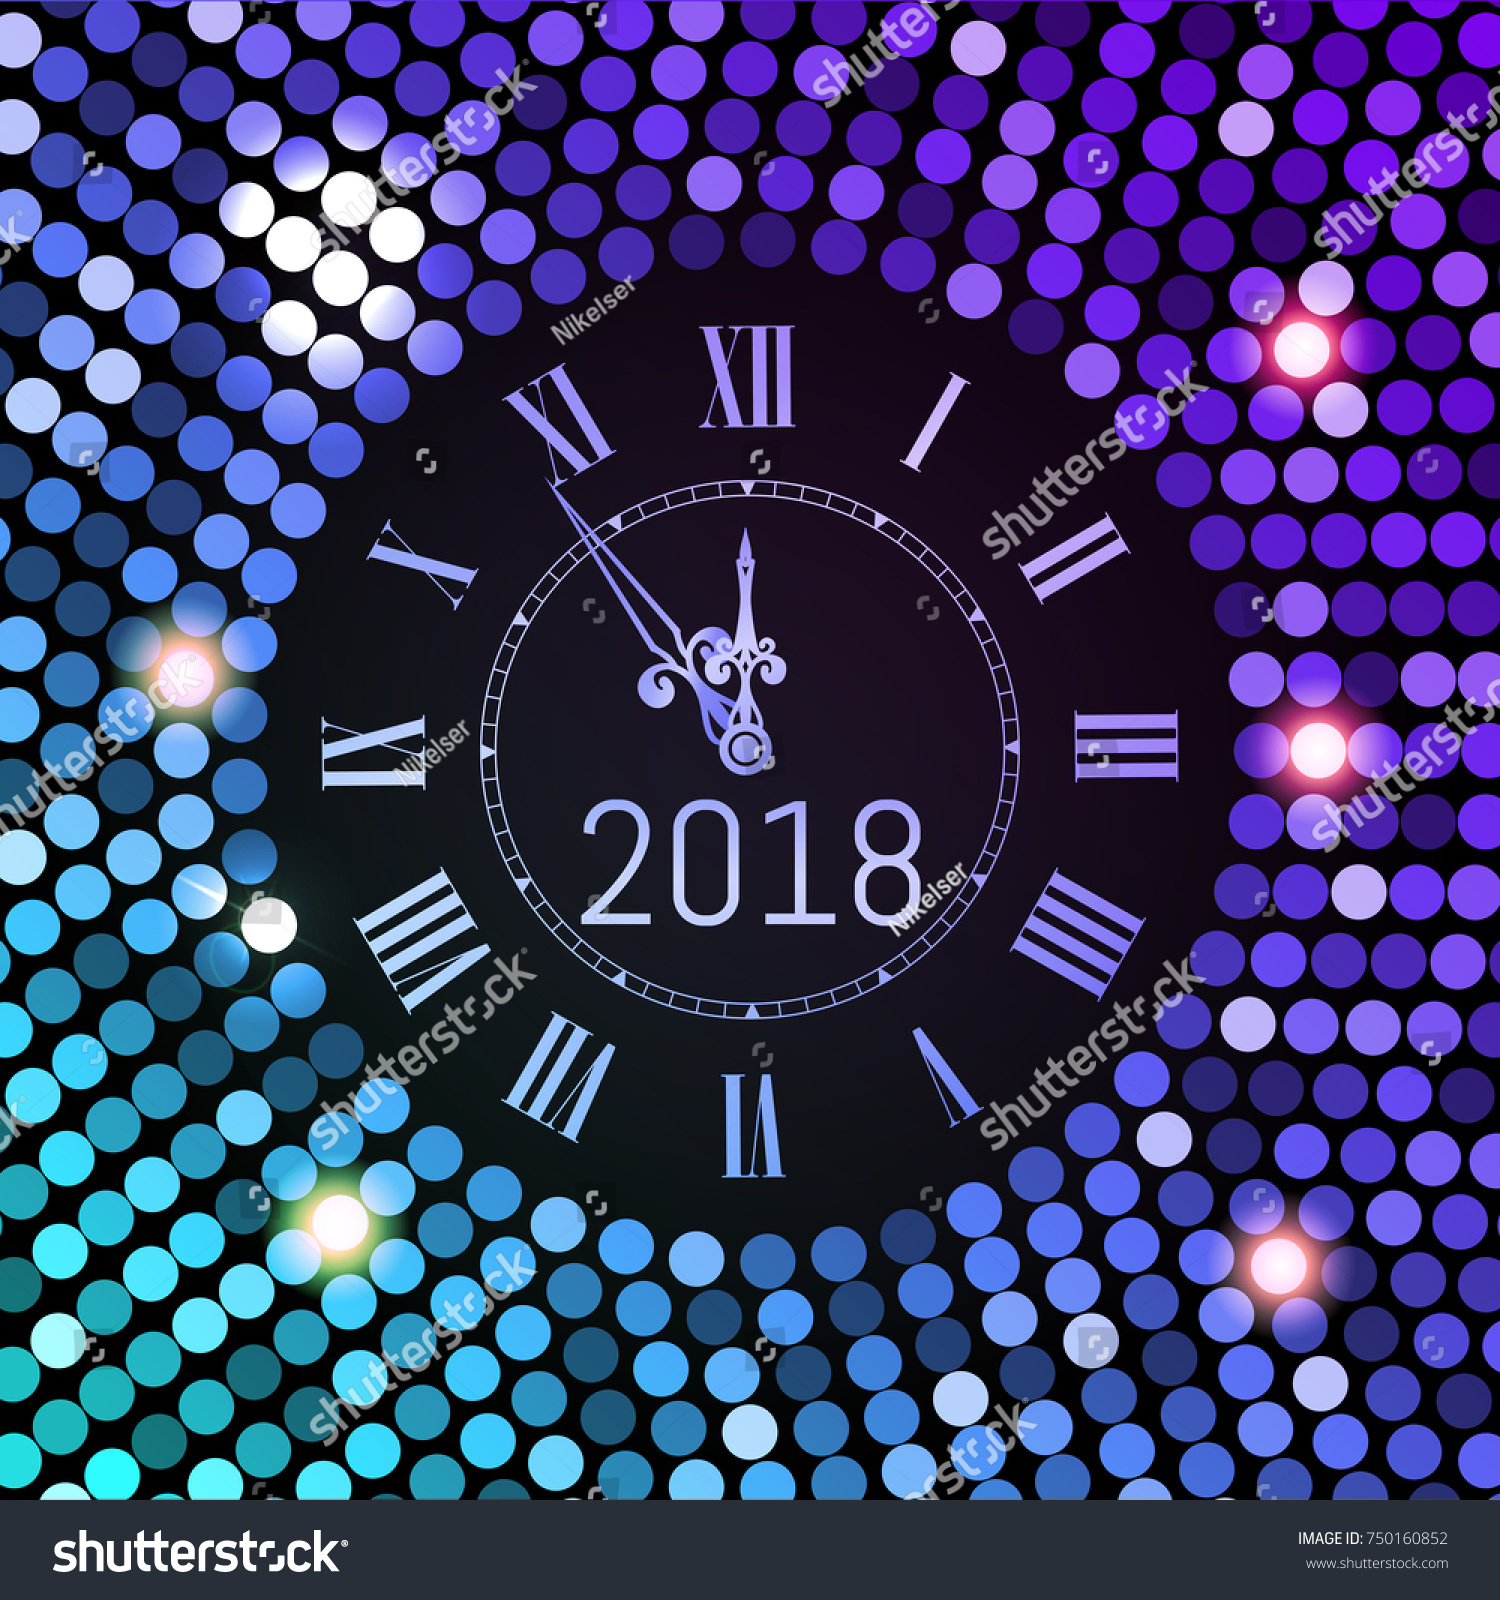 new year 2018 celebration background purple circle disco pattern background with clock number 2018